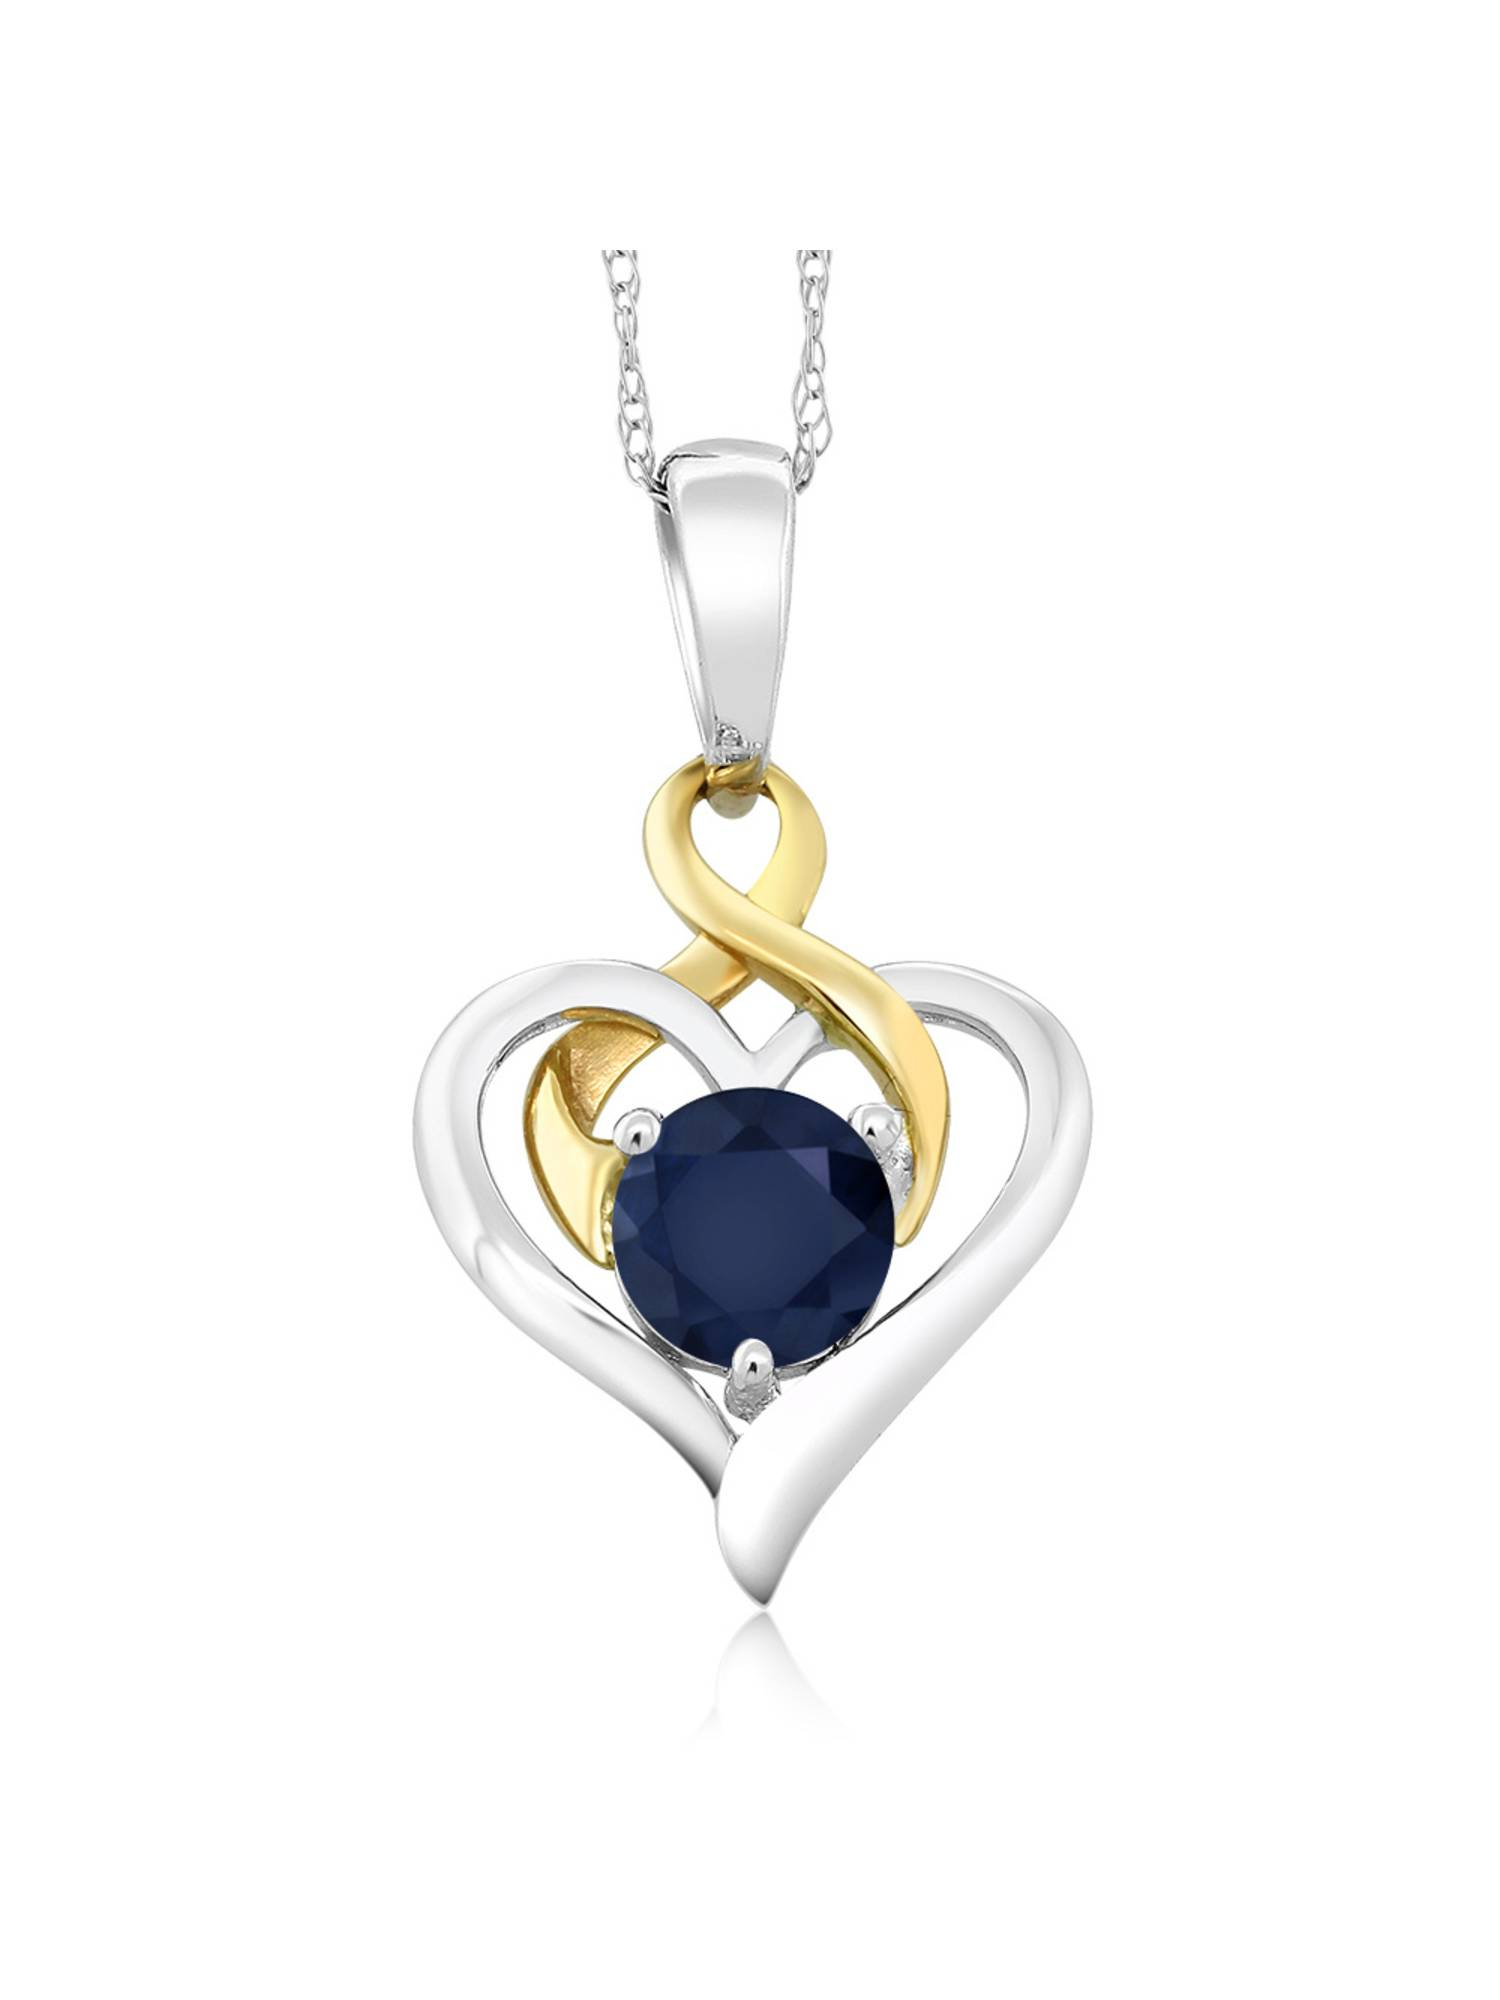 10K Two-Tone Gold 1.00 Ct Round Blue Sapphire Heart Pendant With Chain by